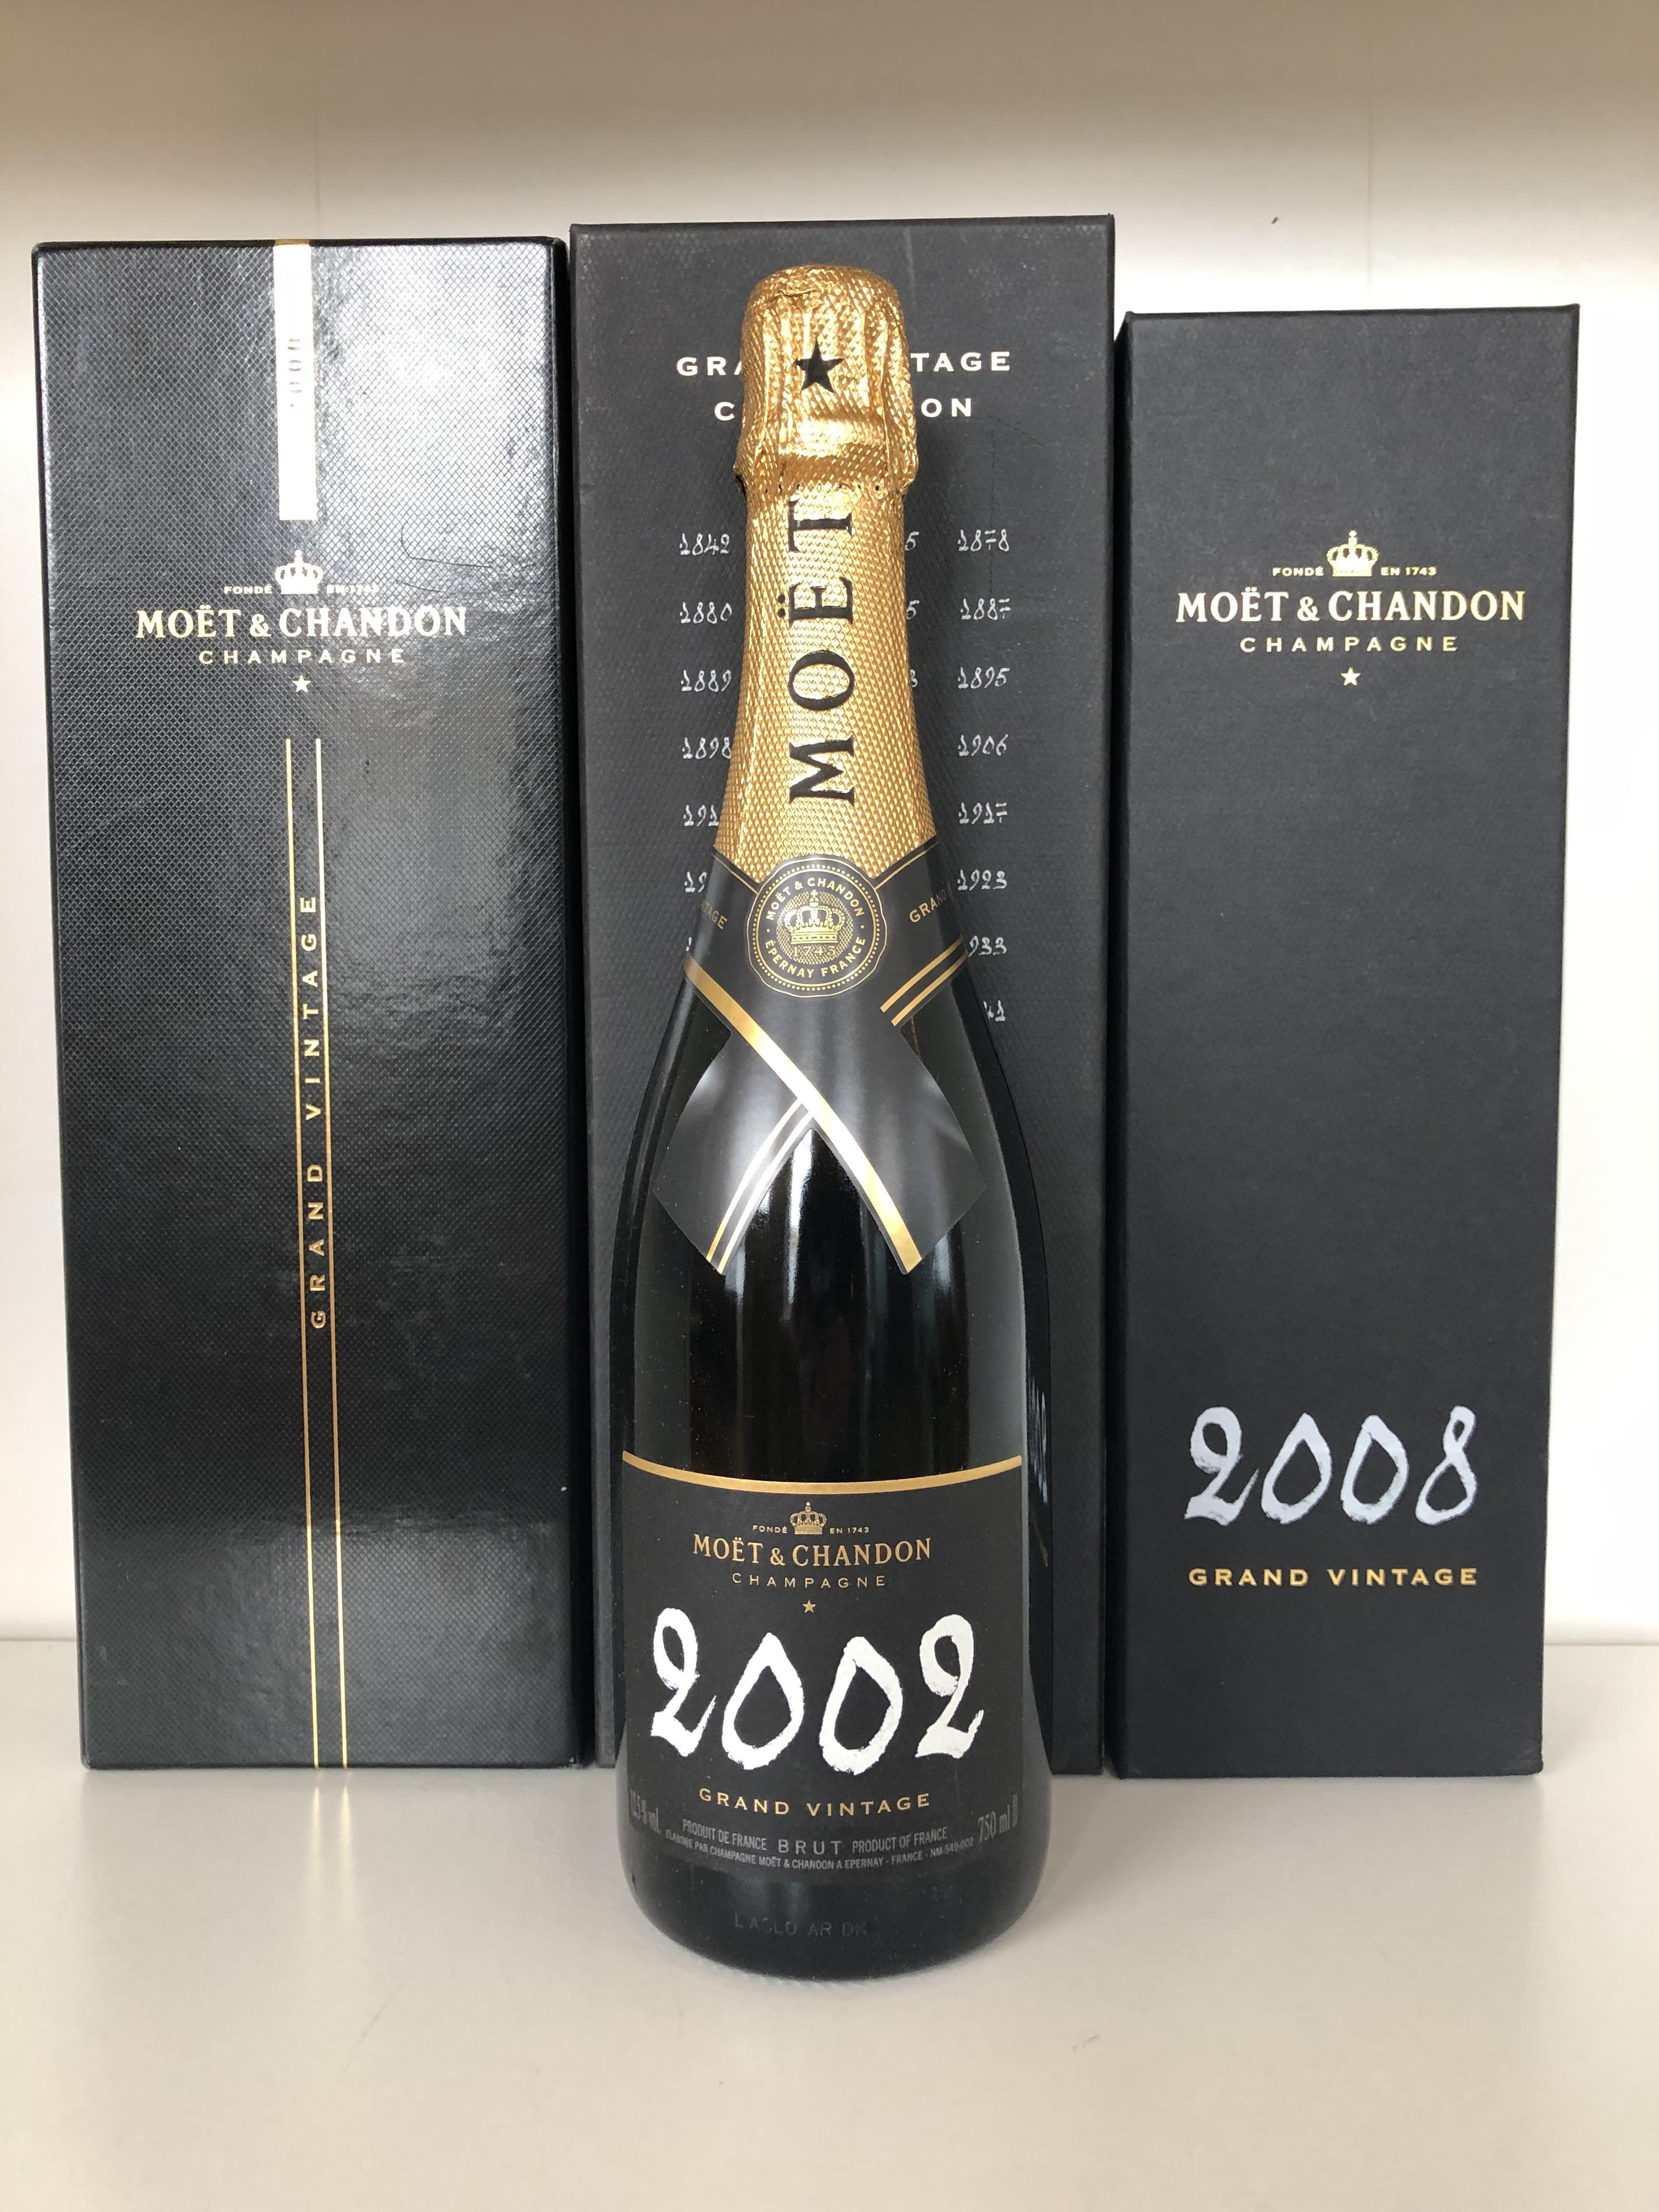 Lot 19 - Various Moet et Chandon Grand Vintage Tasting Lot, Champagne, France, 3 bottles